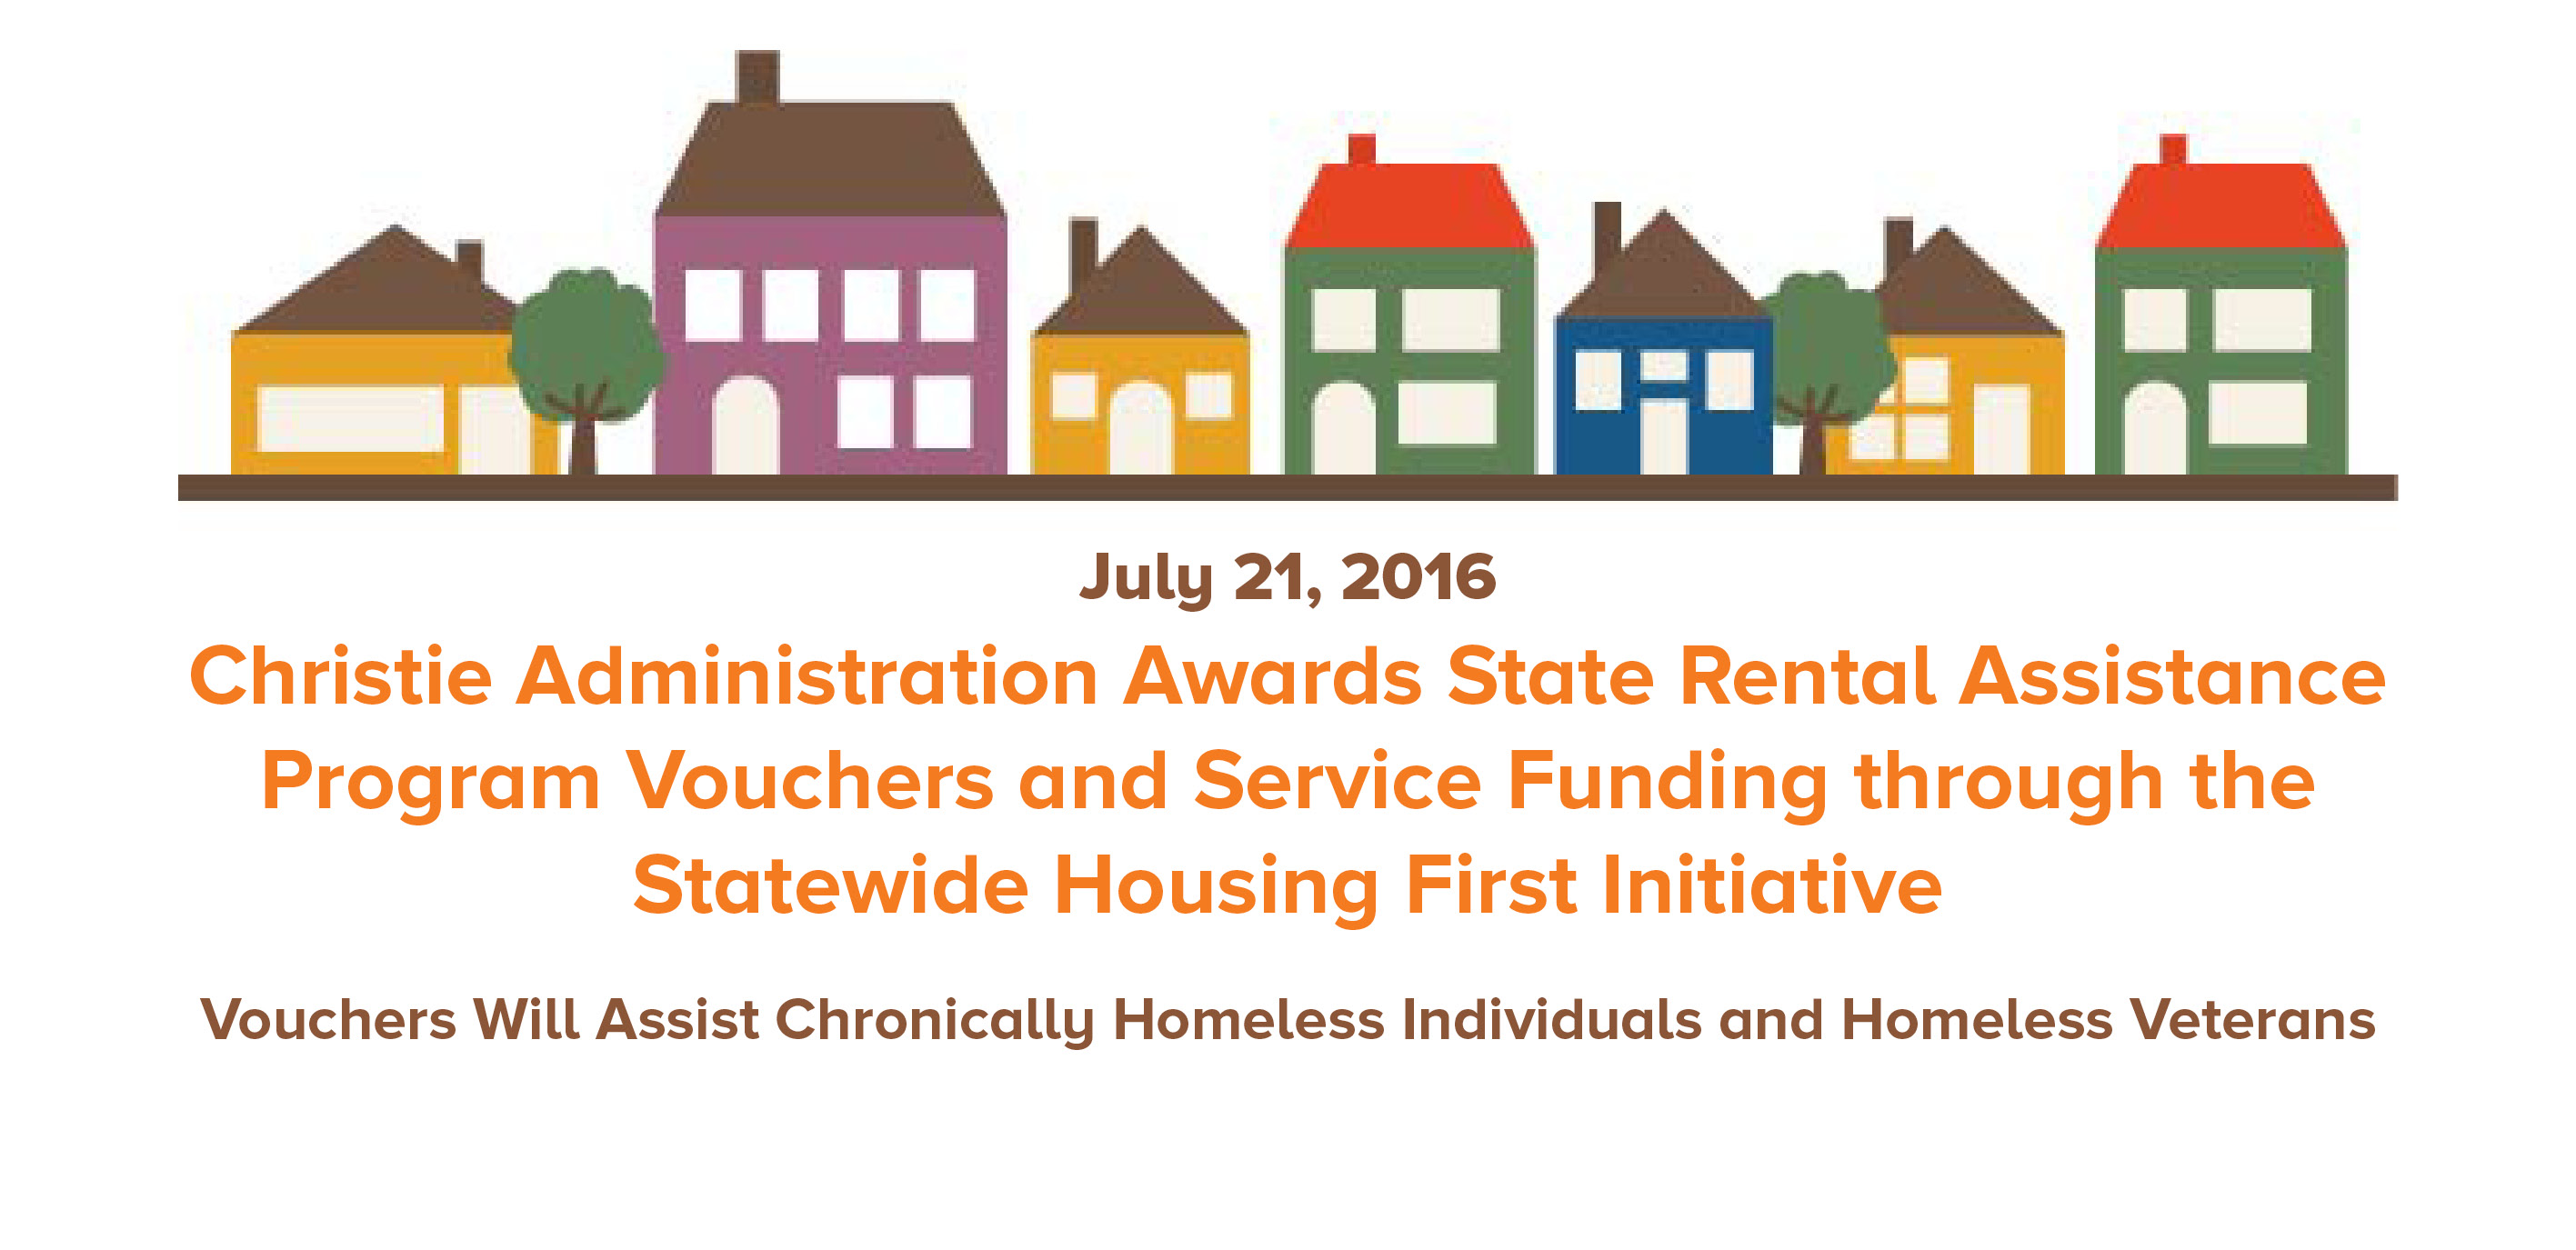 NJ AWARDS STATE RENTAL ASSISTANCE VOUCHERS AND SERVICE FUNDING